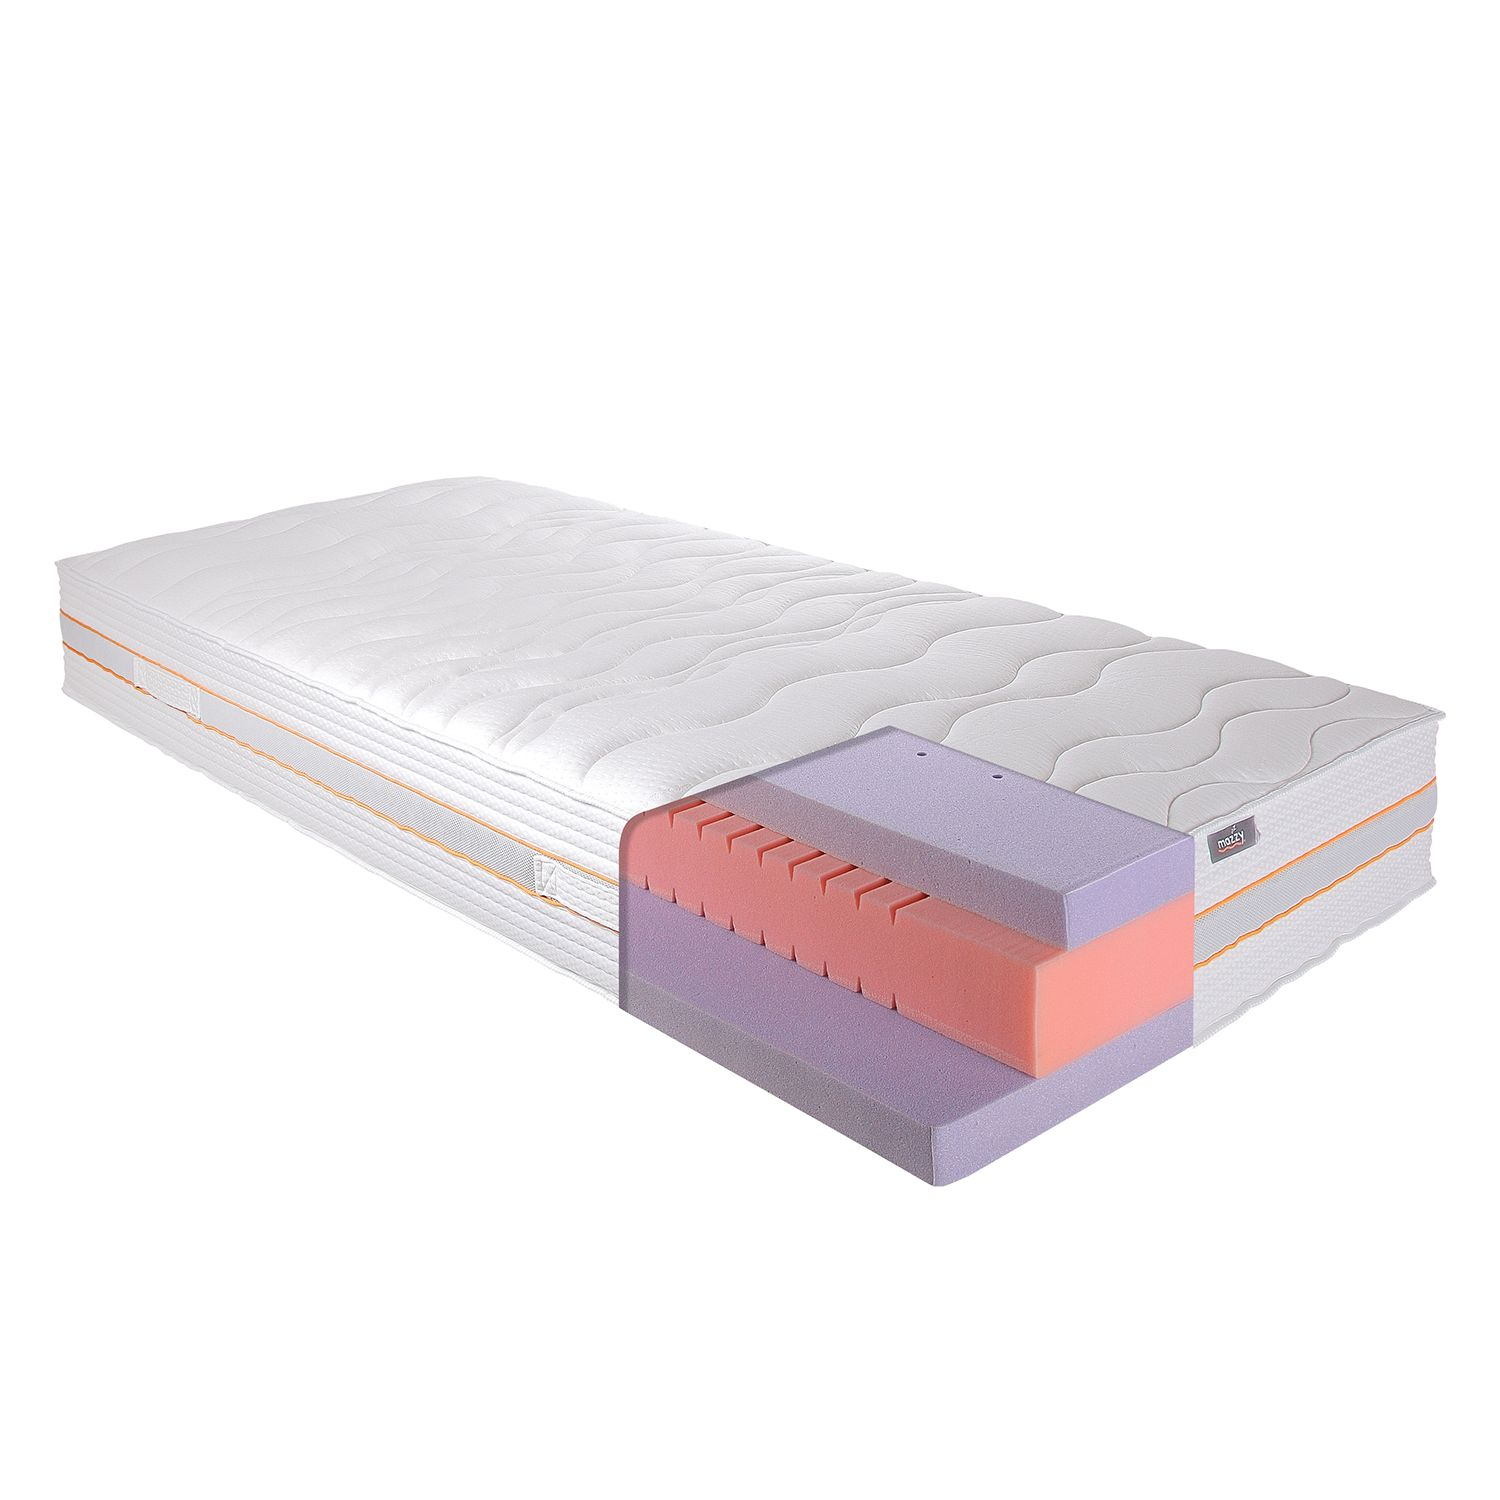 matelas en mousse froide gel 7 zones de somove. Black Bedroom Furniture Sets. Home Design Ideas